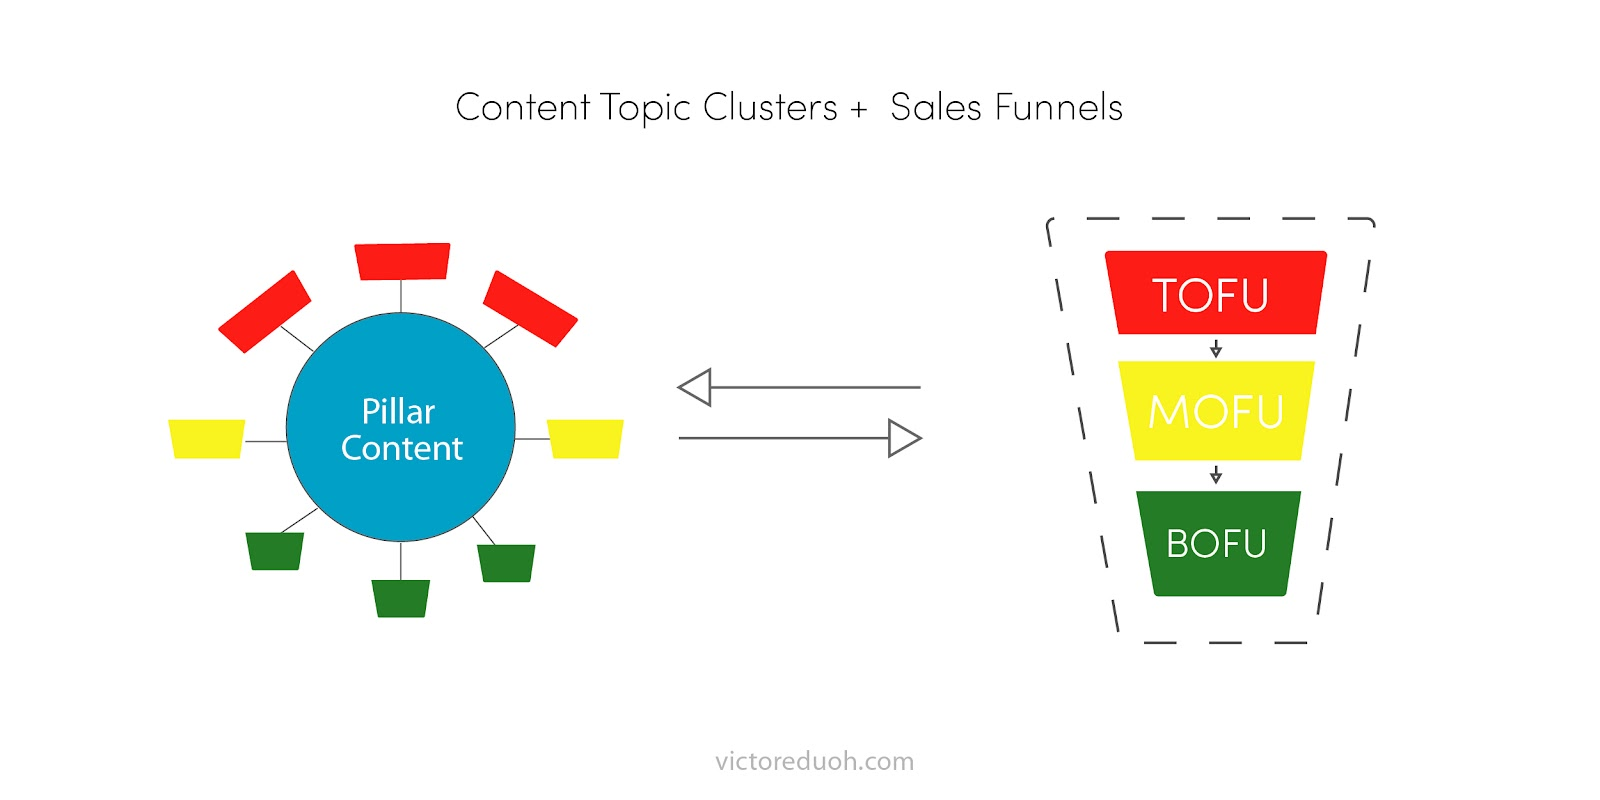 content topic clusters and sales funnels for saas